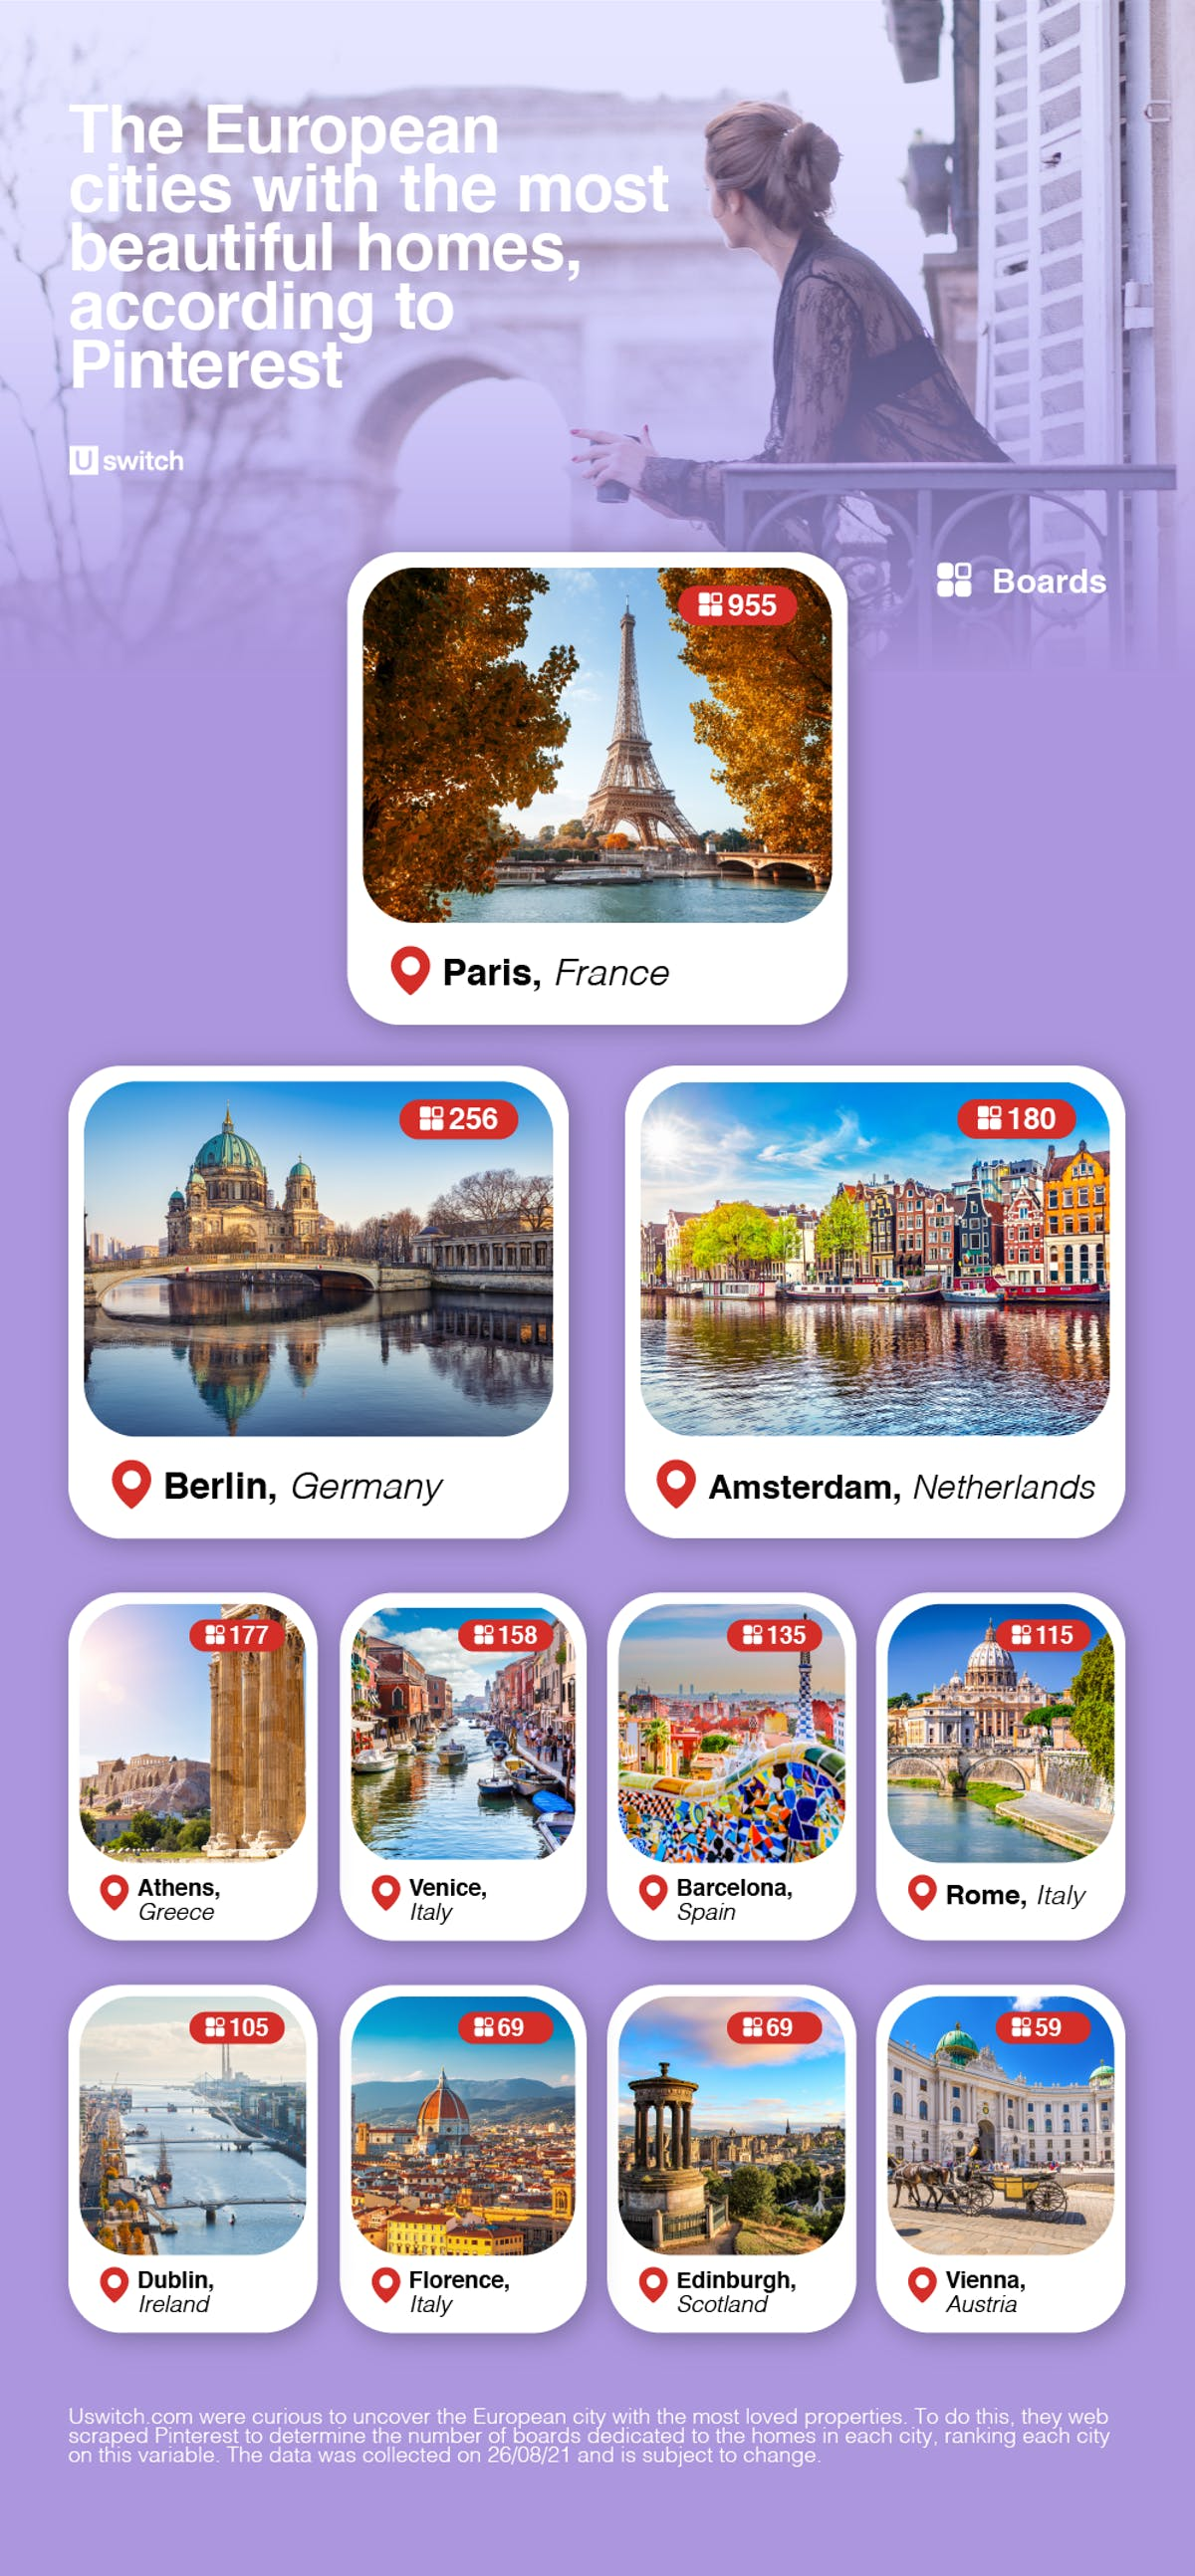 The European cities with the most beautiful homes, according to Pinterest top ten